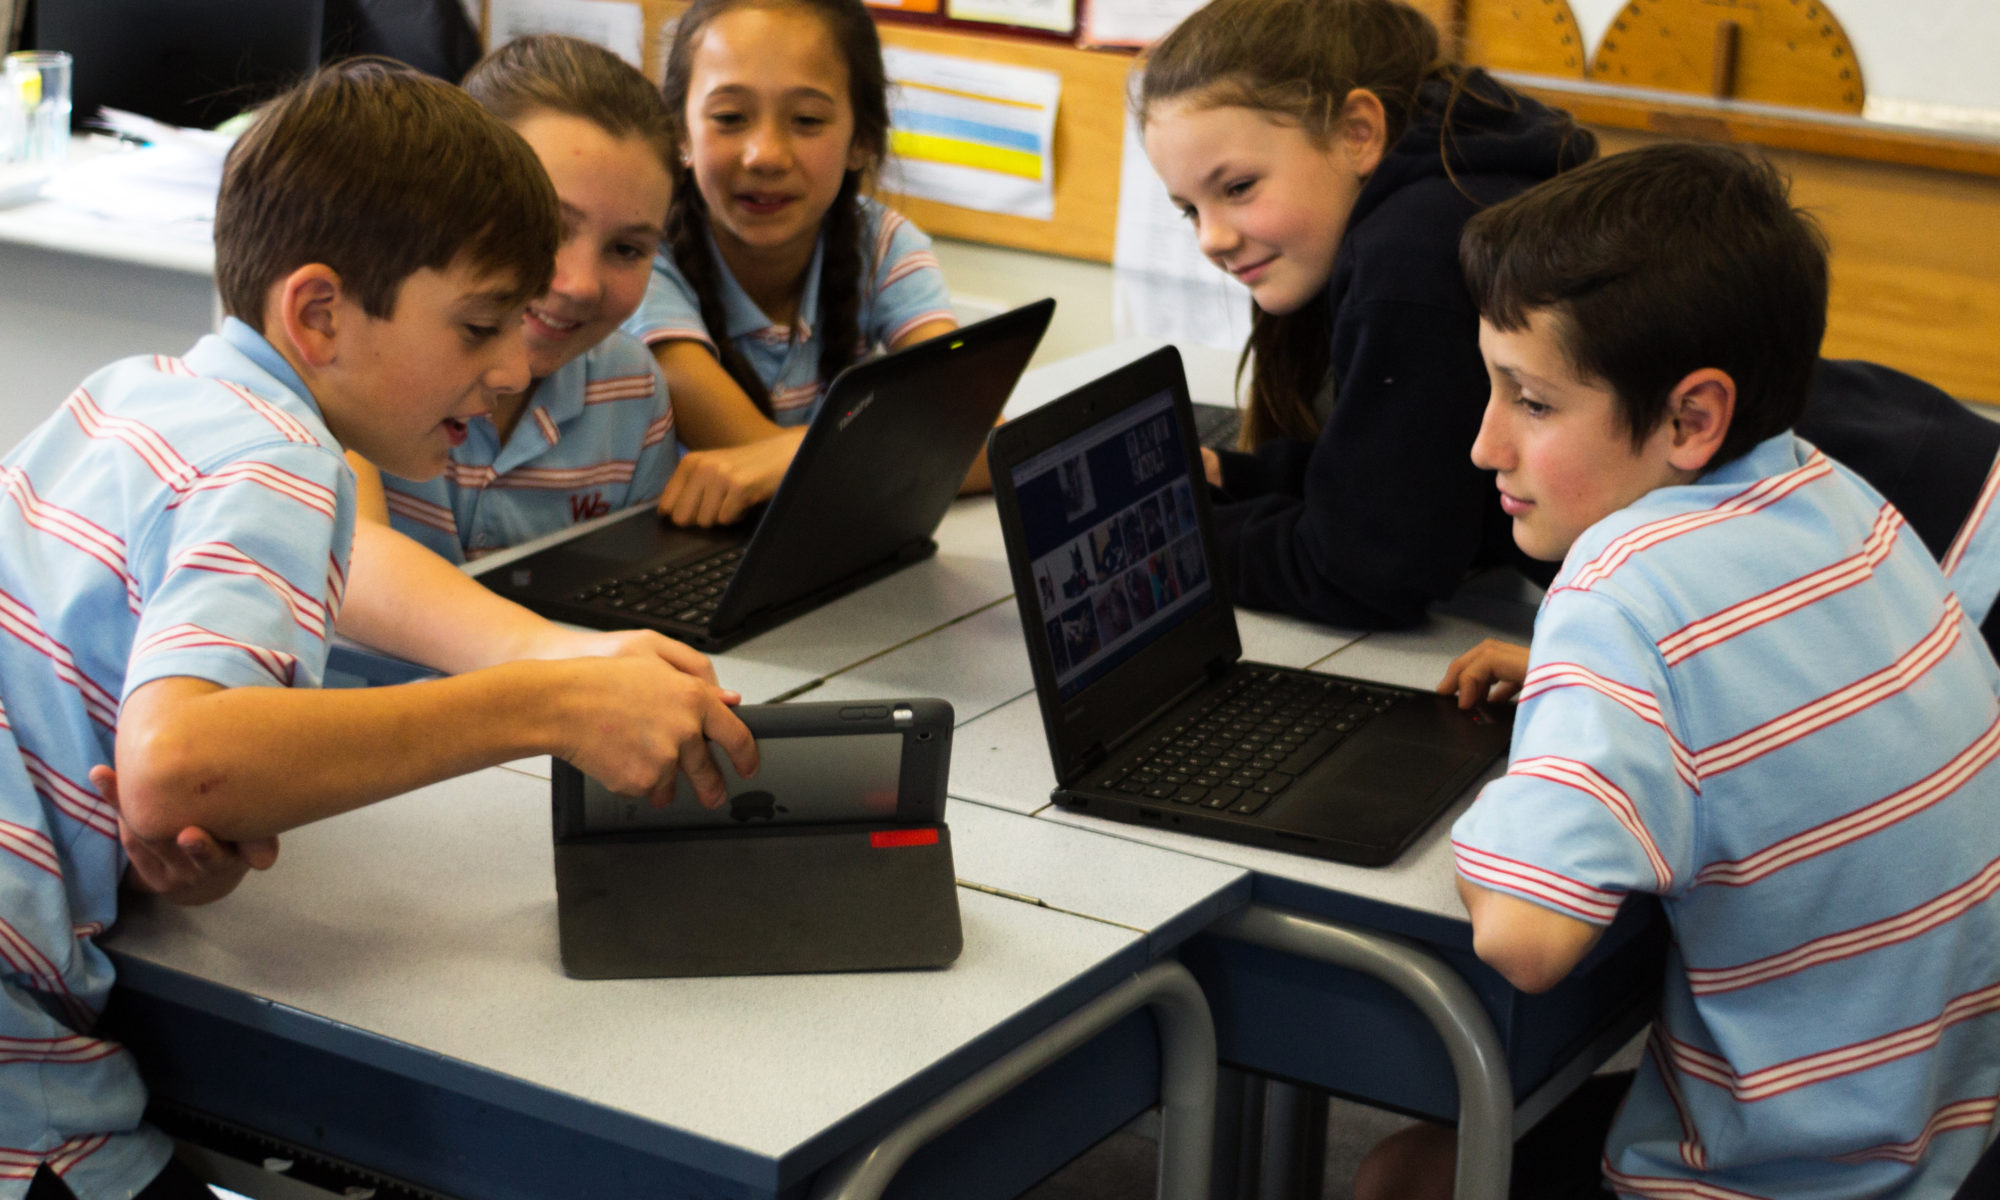 Using technology in the classroom for learning at Wadestown School.